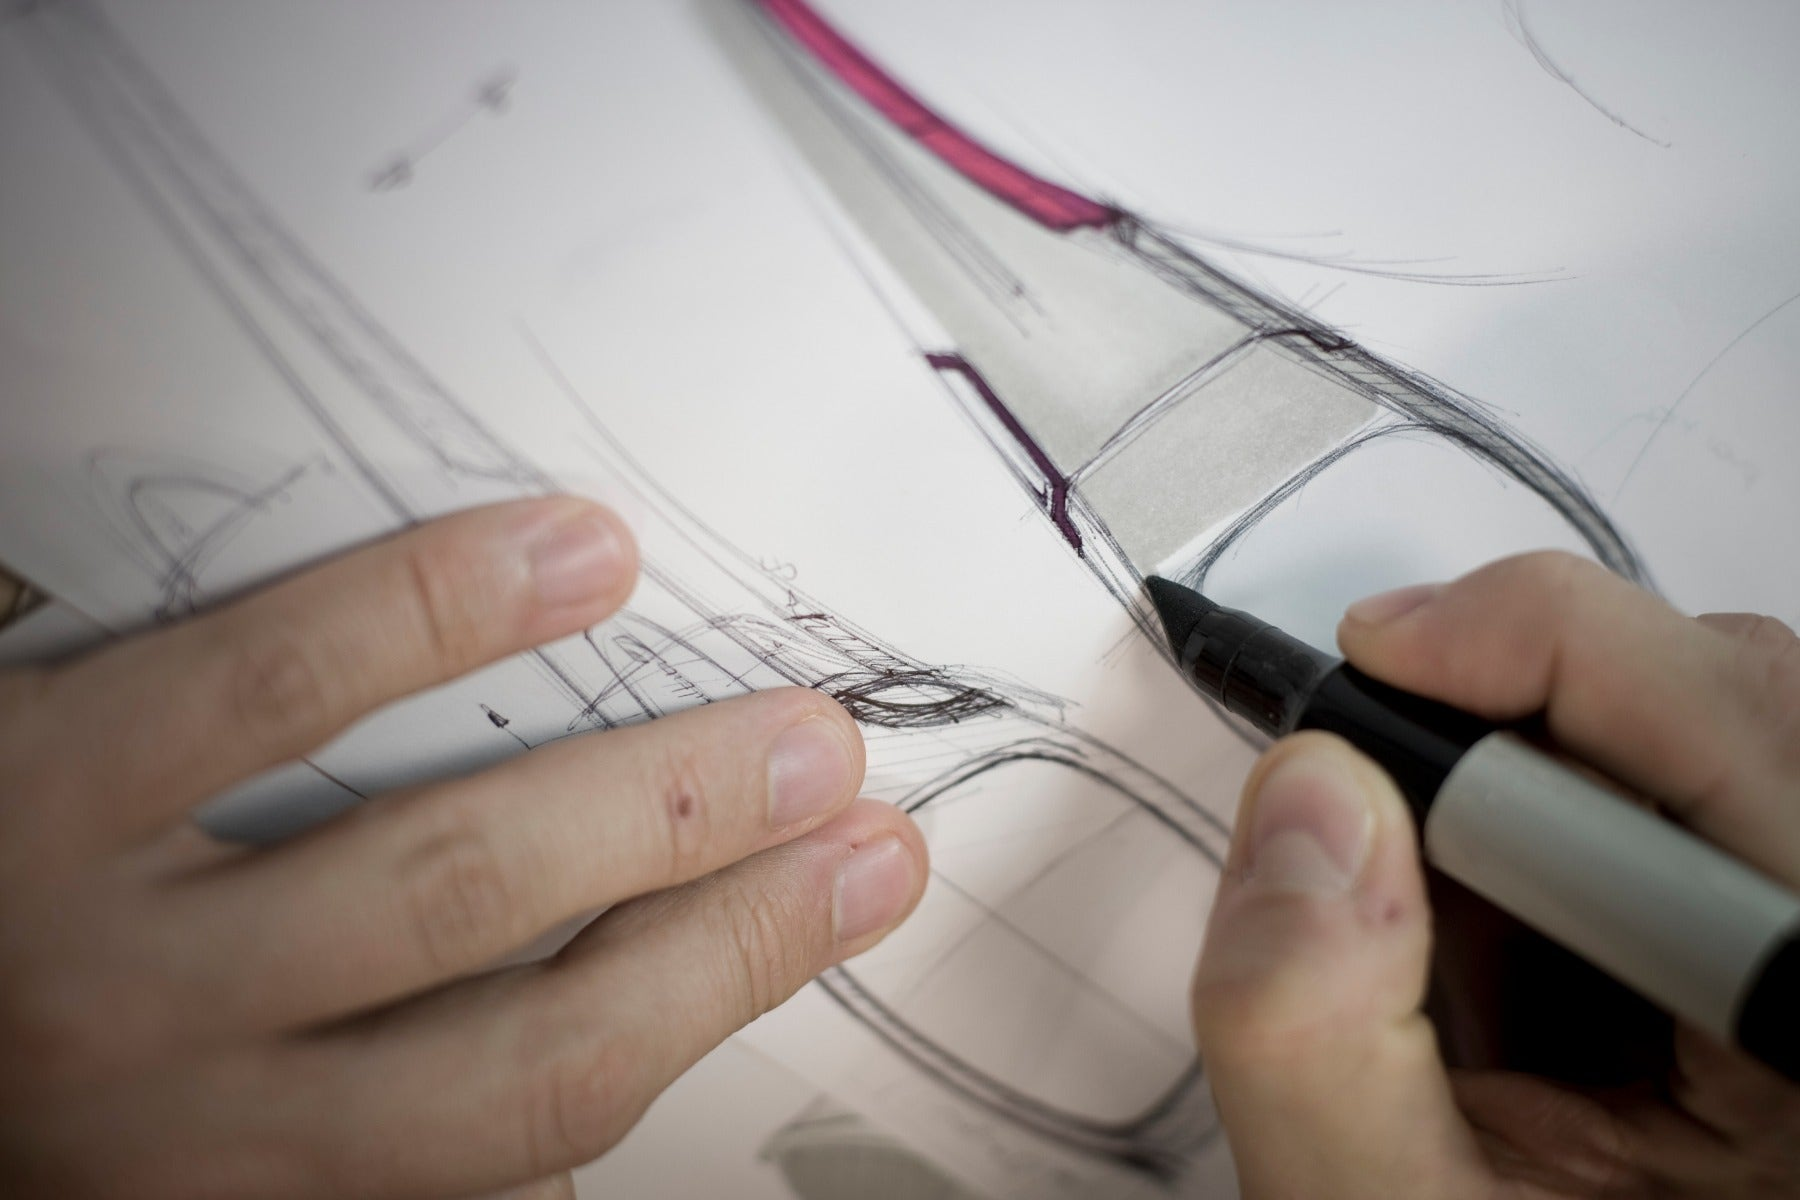 Drawing the idea